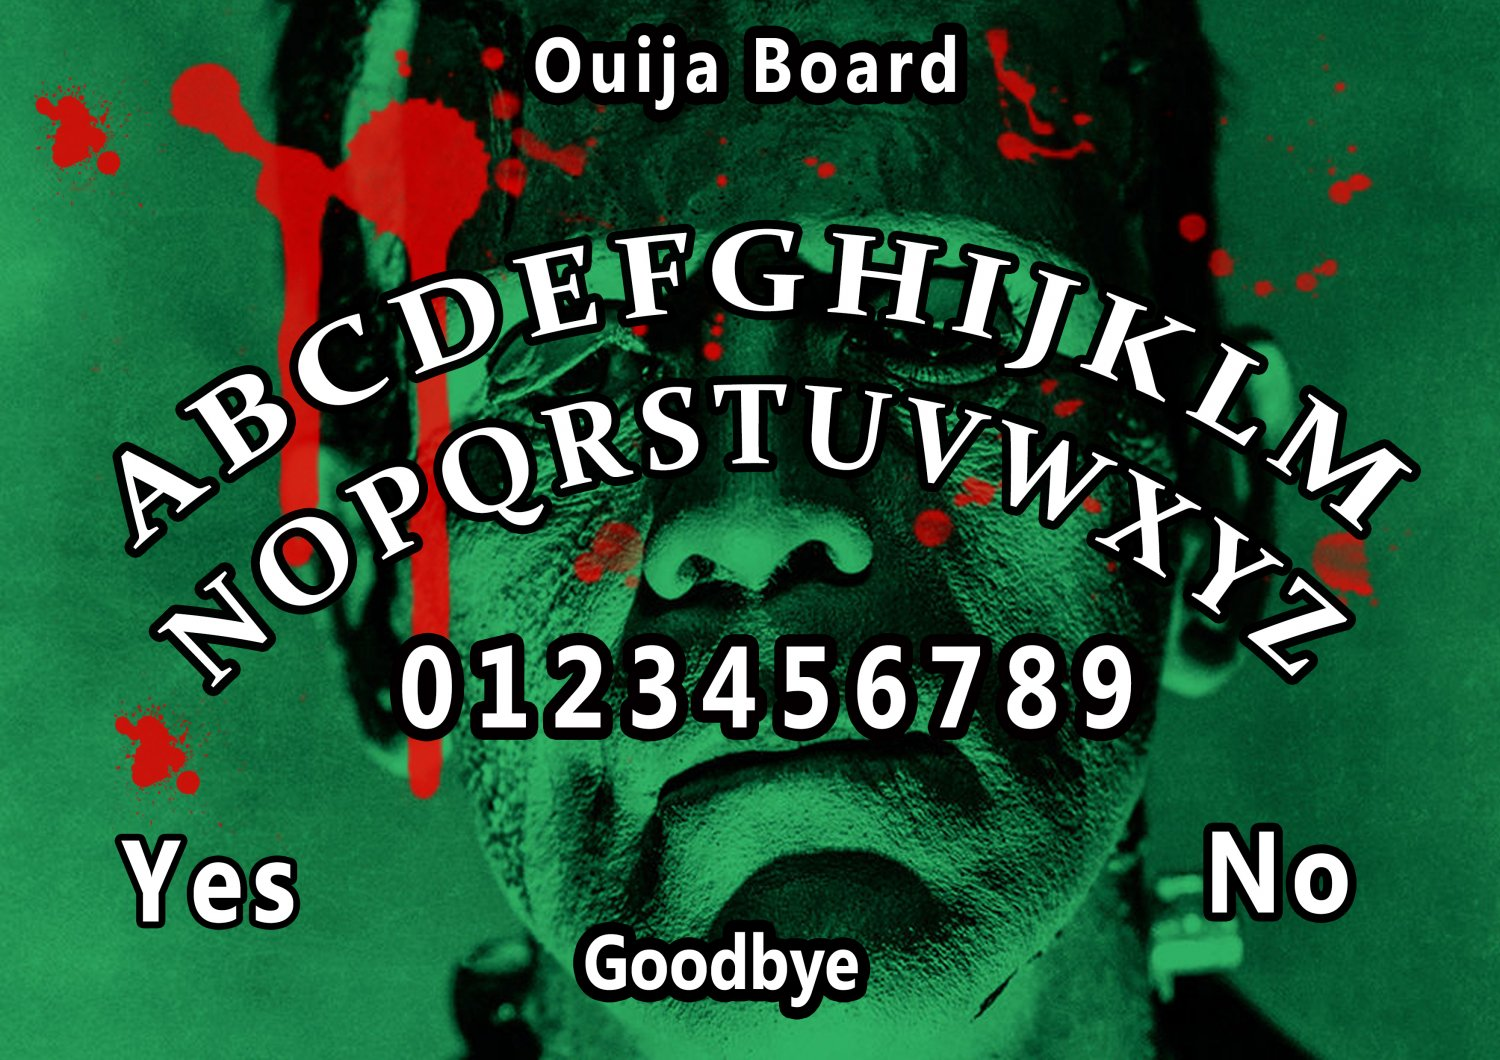 Limited Edition Frankenstein A4 Laminated Ouija Board / Poster | Ghost Hunting | EVP | Seances.